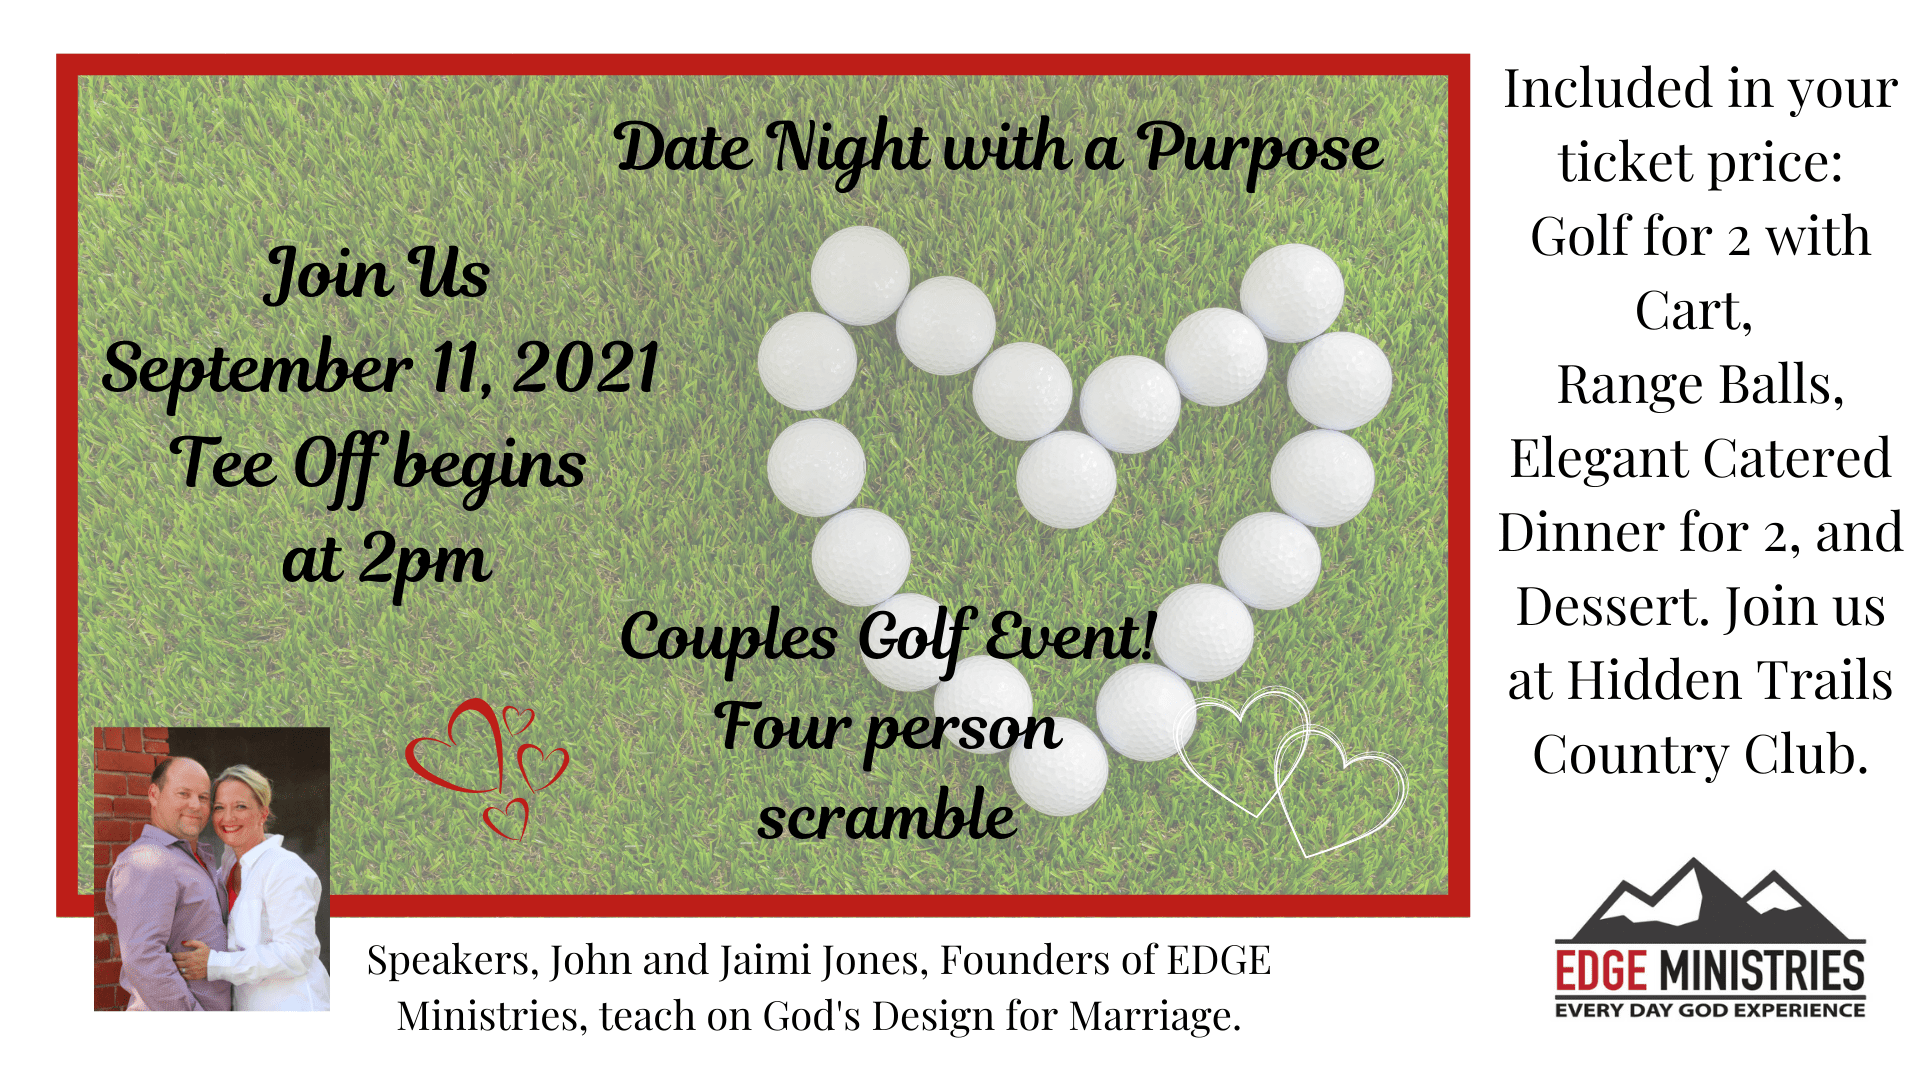 Date Night with a Purpose: Couples Golf Event